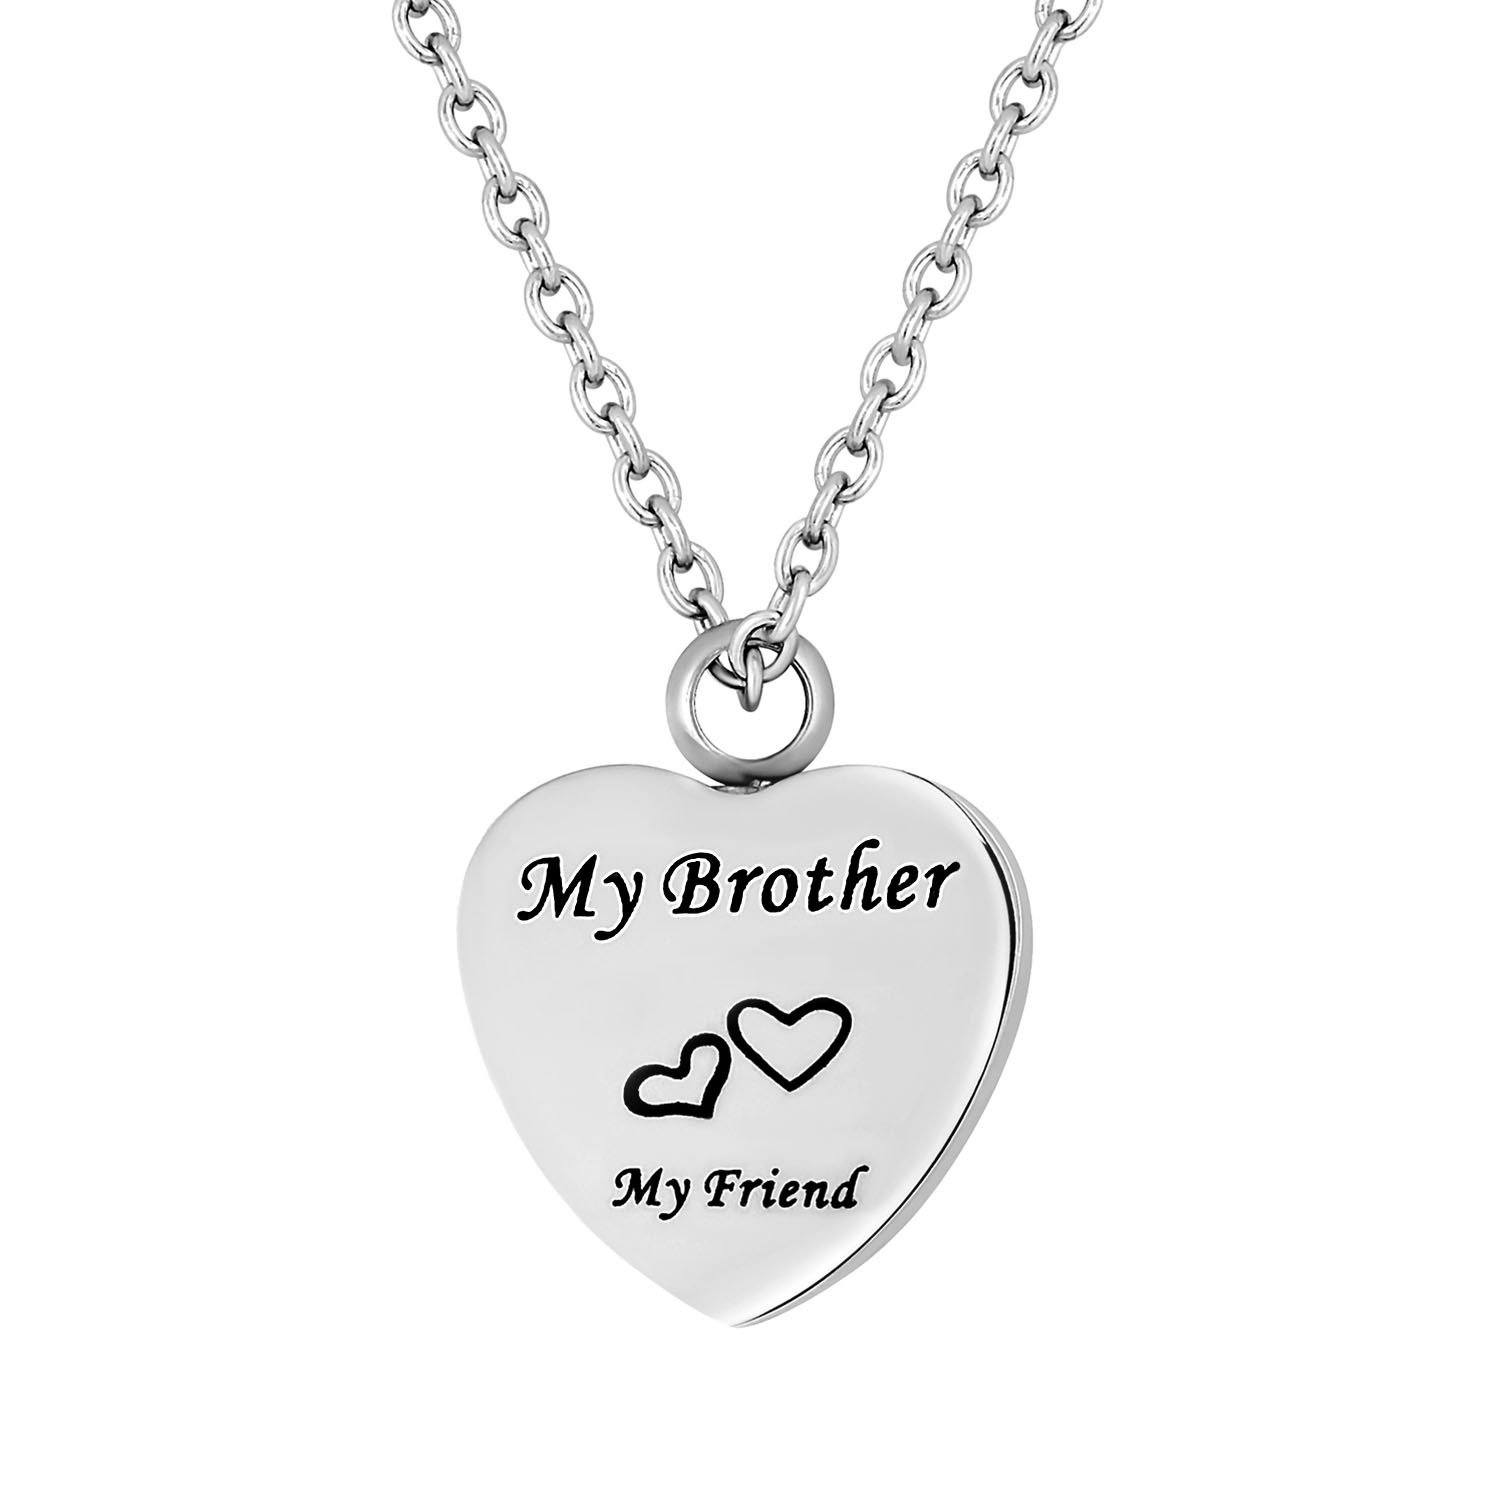 my brother cremation necklace for ashes cremation urn. Black Bedroom Furniture Sets. Home Design Ideas